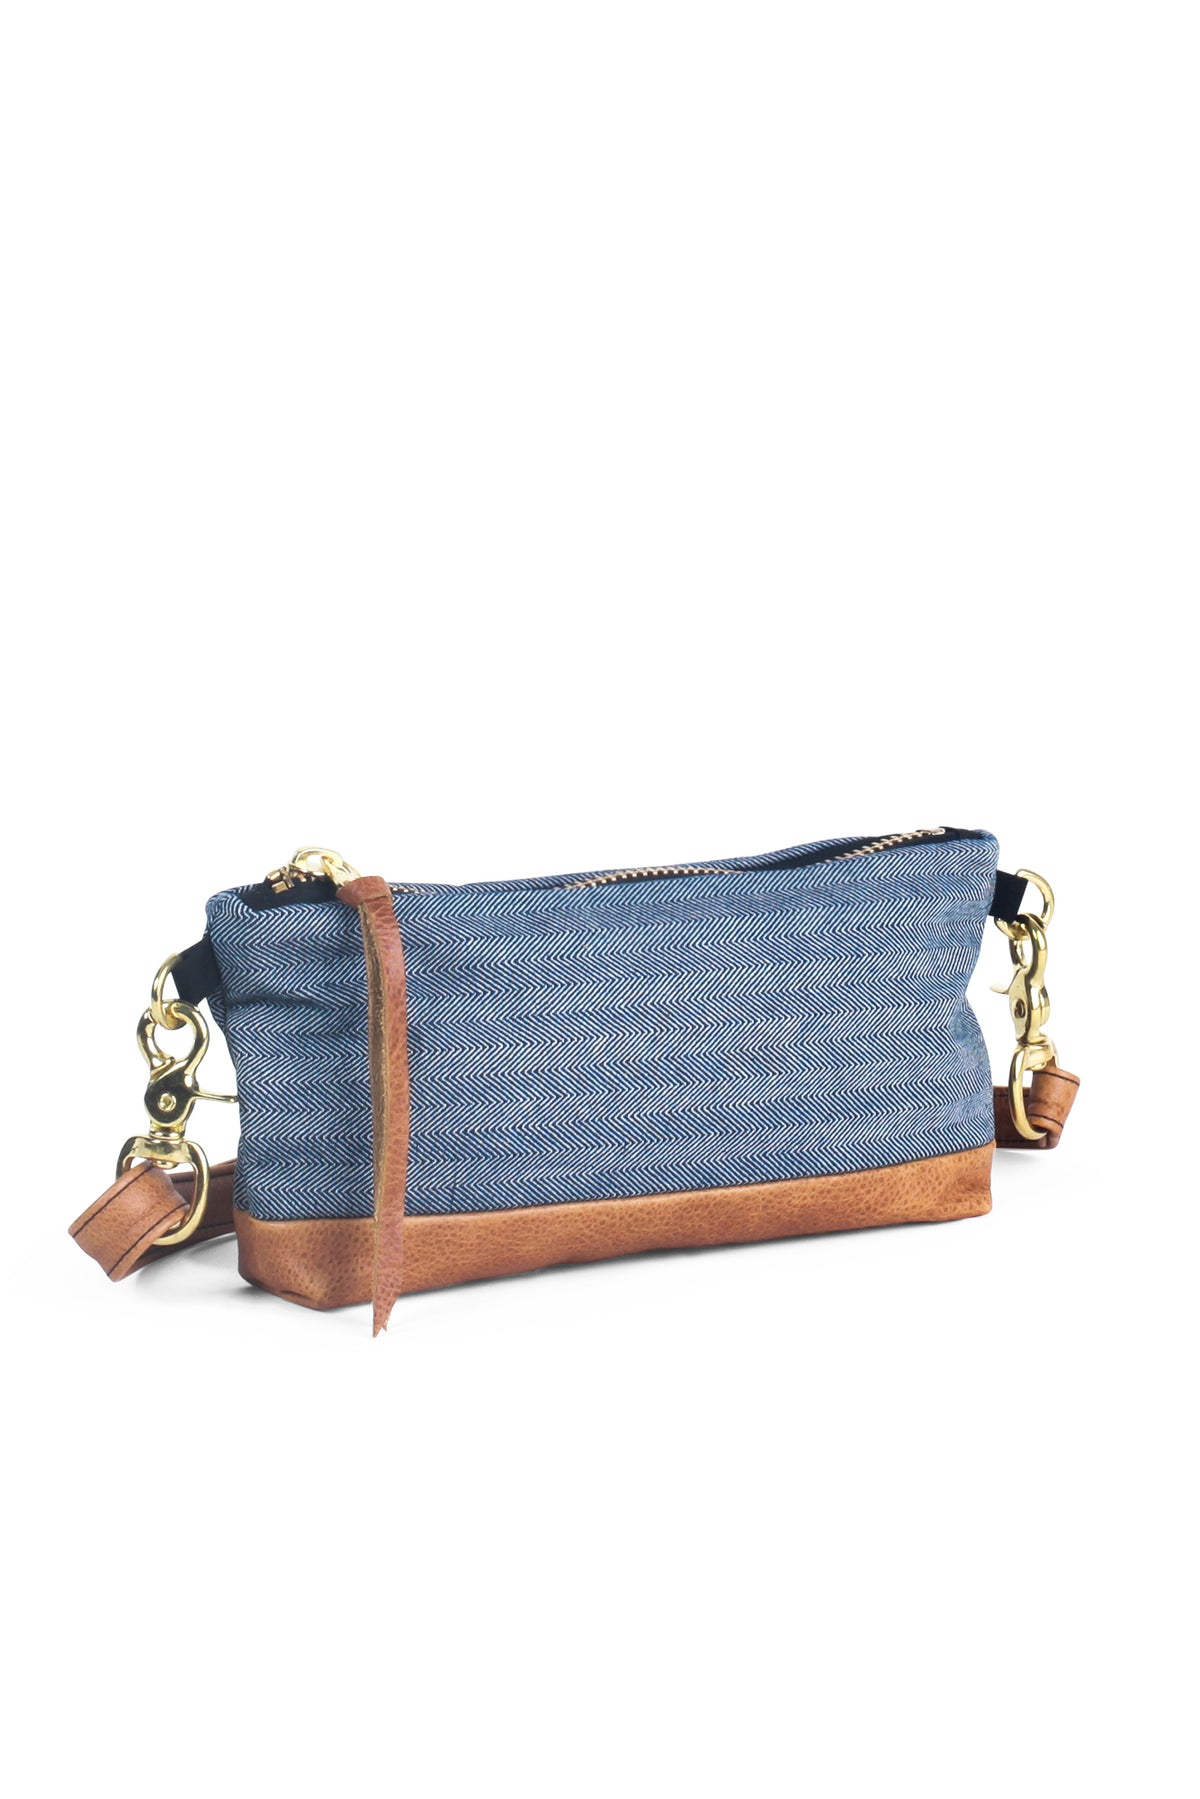 The Mini Vida Fanny Pack - Danielle - Image 2